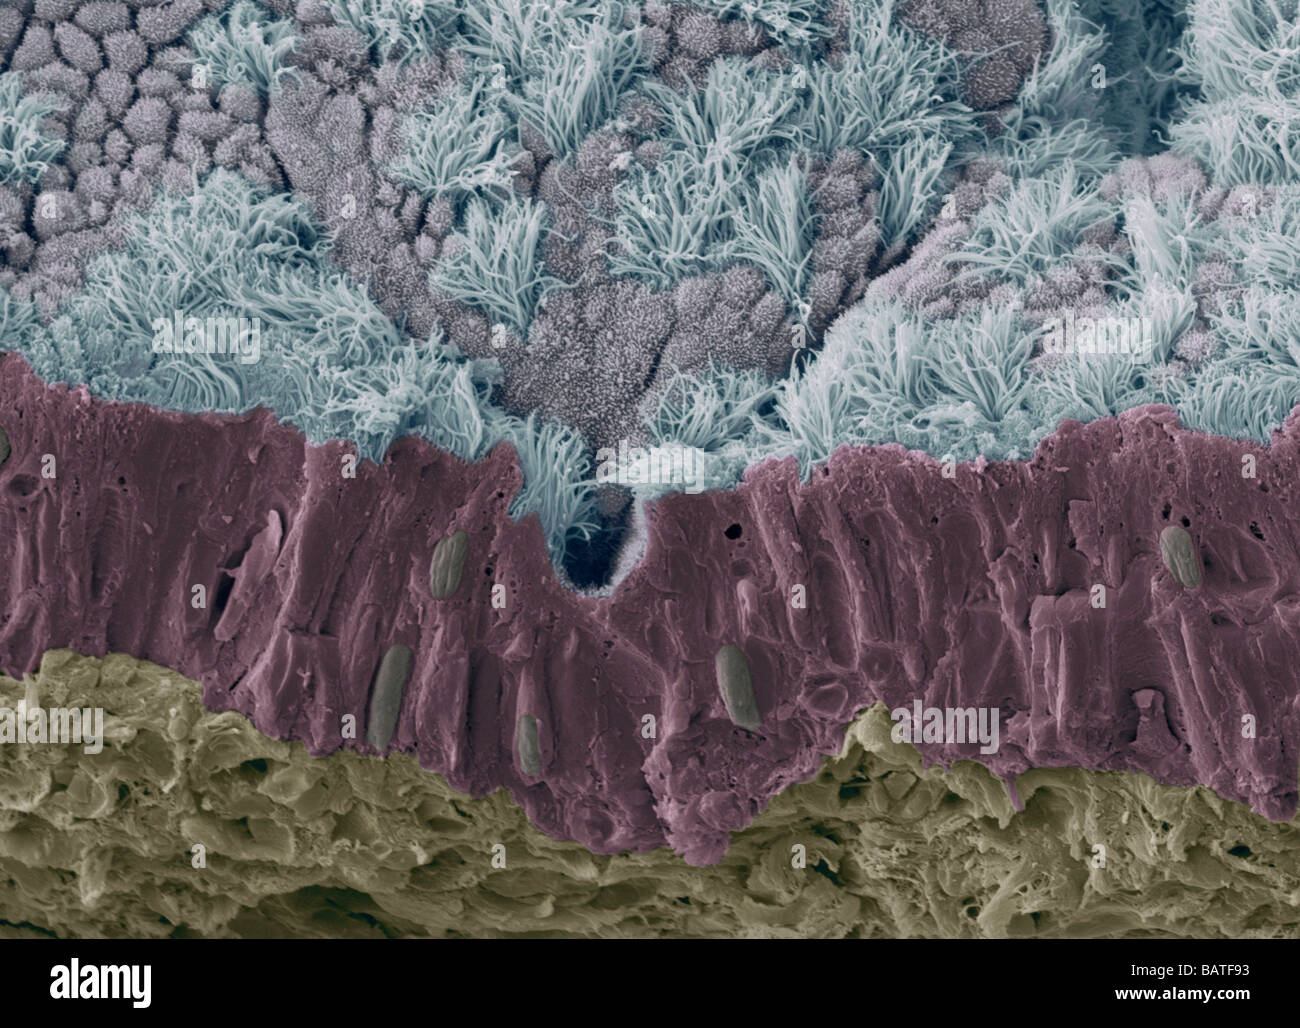 Trachea mucous membrane. Coloured scanningelectron micrograph (SEM) of a fractured mucousmembrane of the trachea - Stock Image